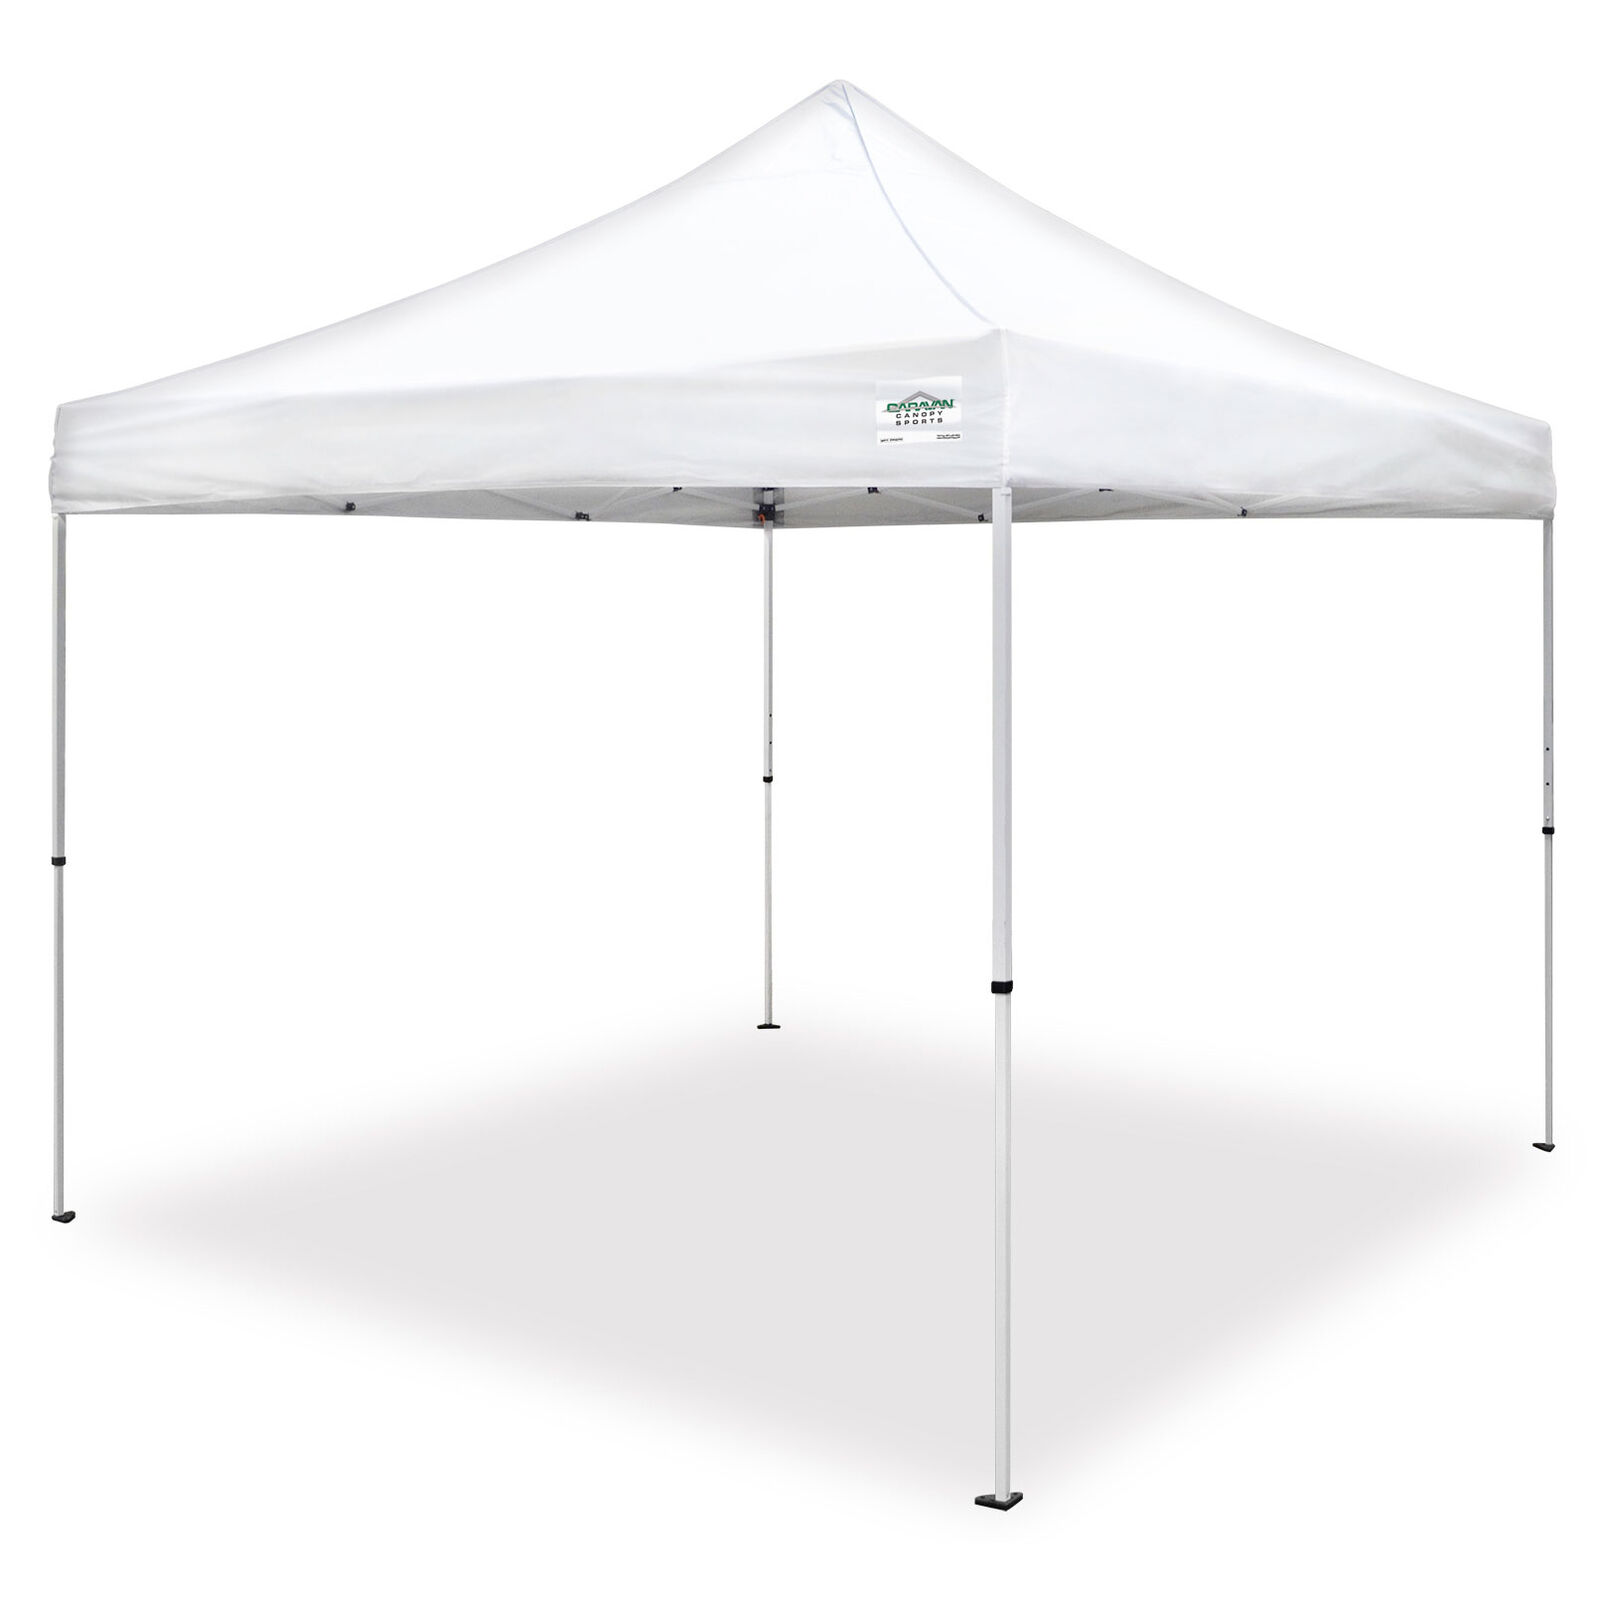 Caravan Canopy M Series Pro 2 10 x 10 Foot  Straight Leg Instant Canopy, White  store sale outlet